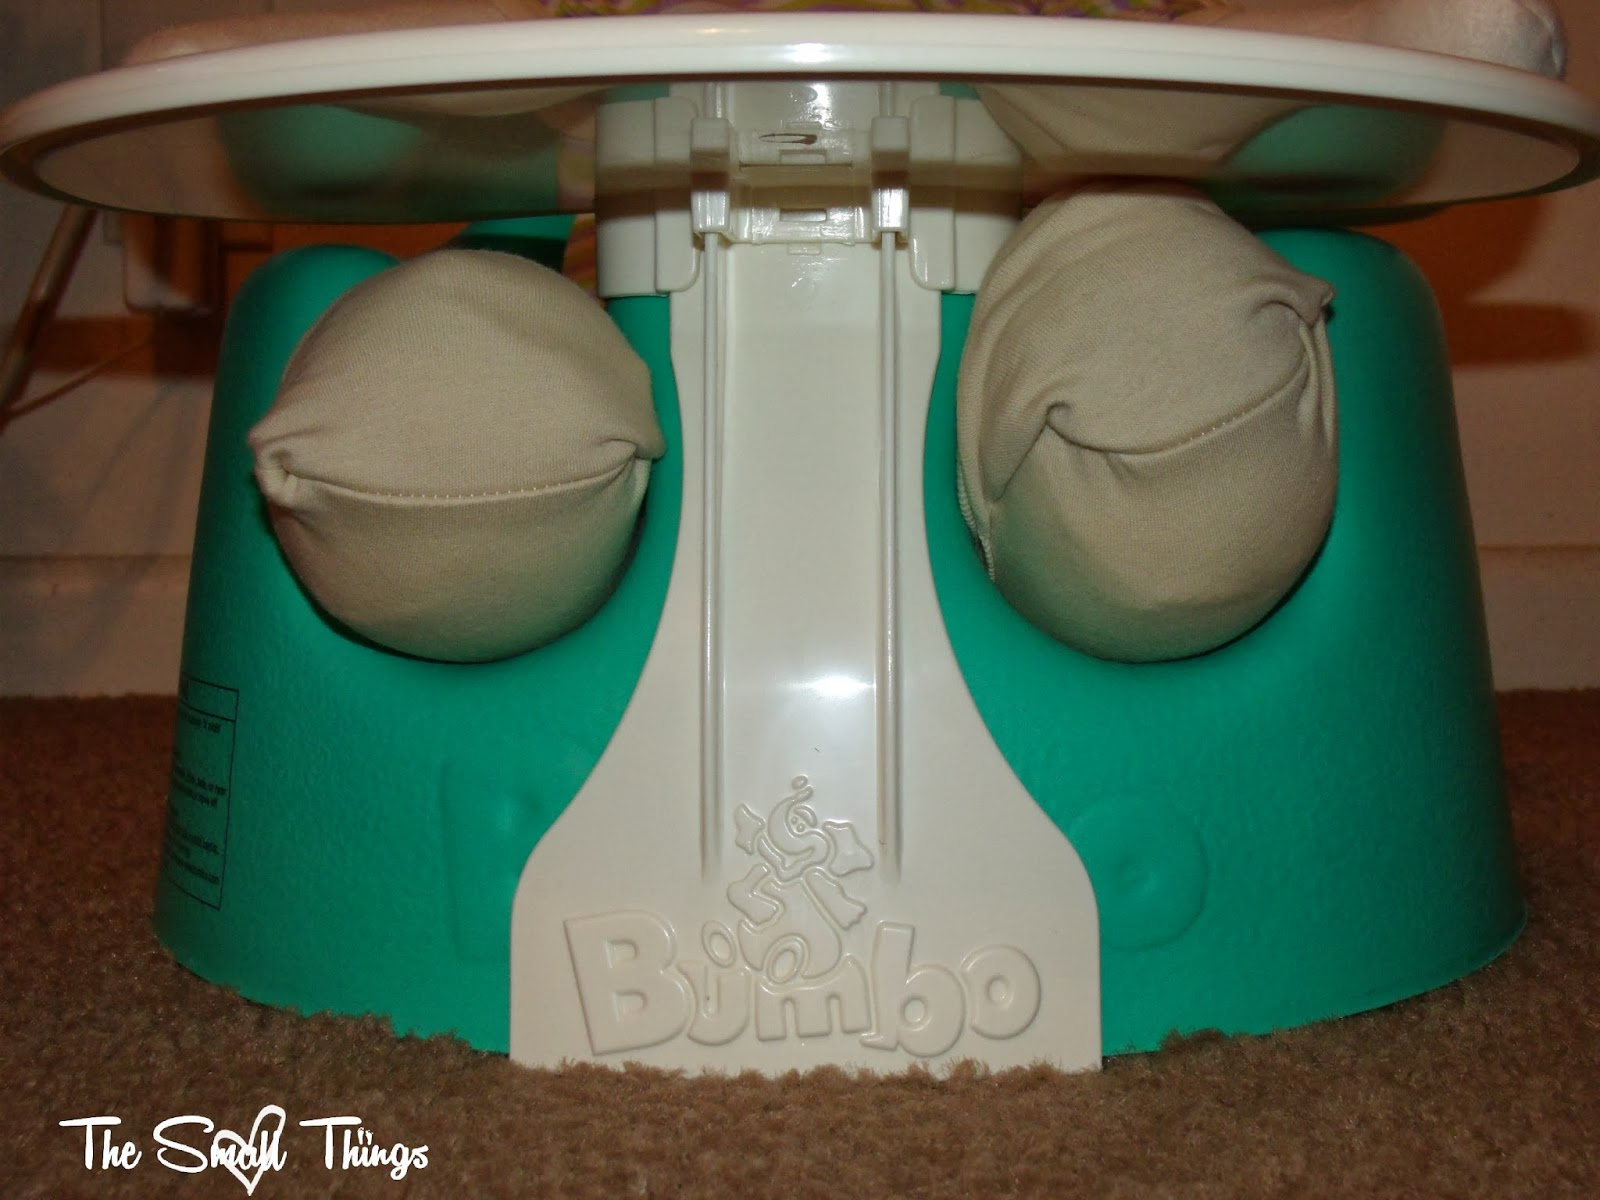 Bumbo Floor Seat and Play Tray ReviewGiveaway GiftGuide BumboCares